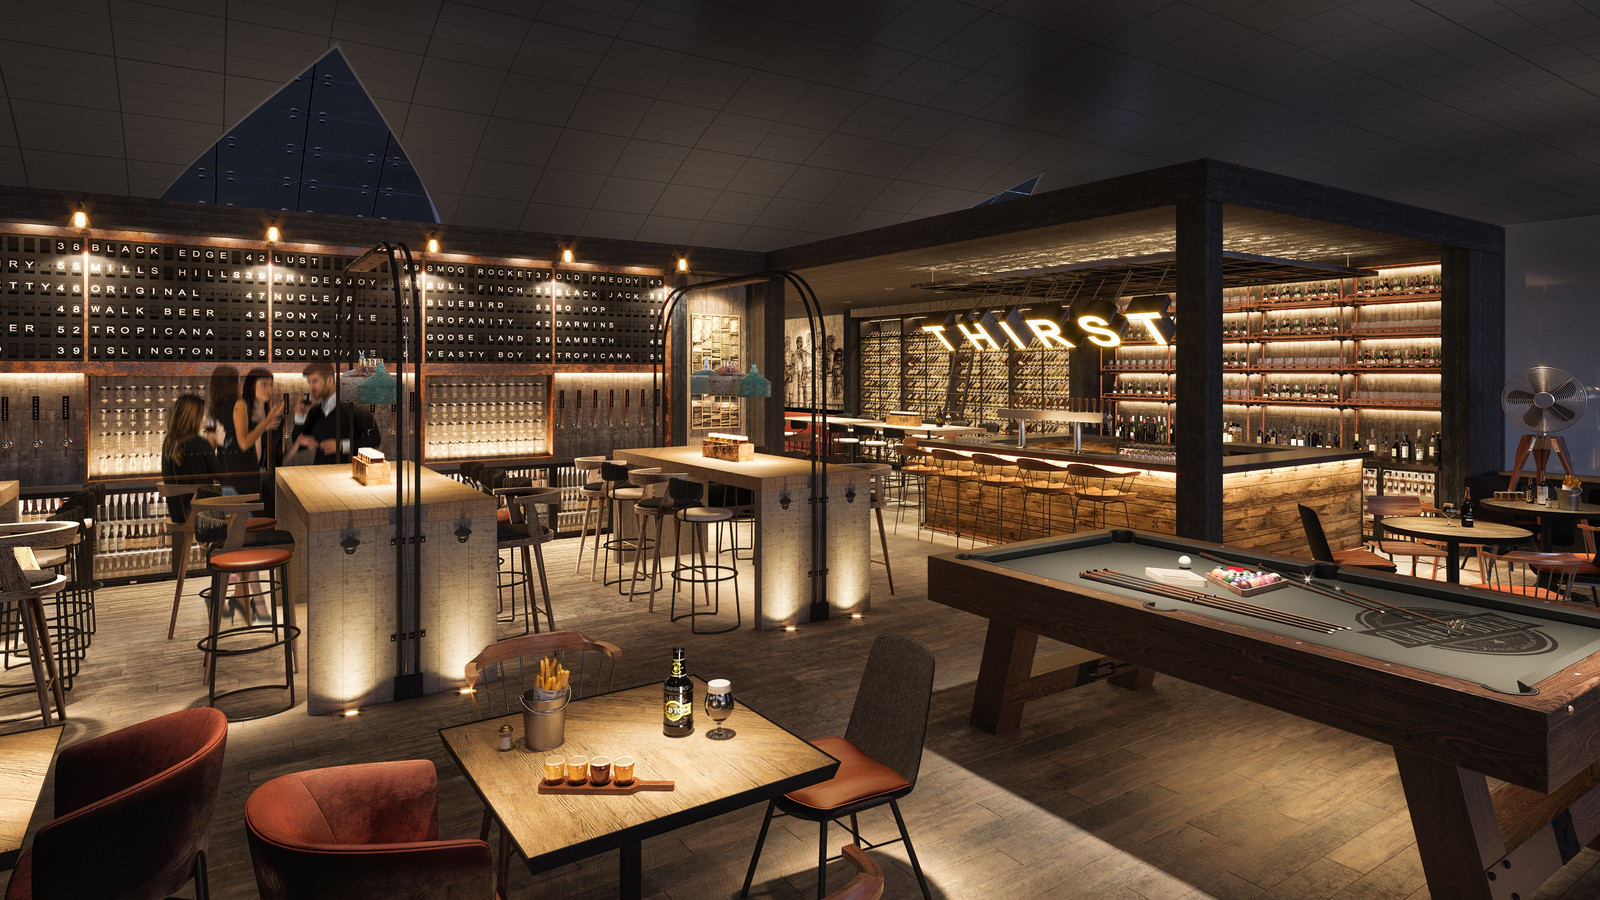 Superior Airport Craft Beer Bar | Architectural And Interior Design CGIs | UK |  Framed Visualisation